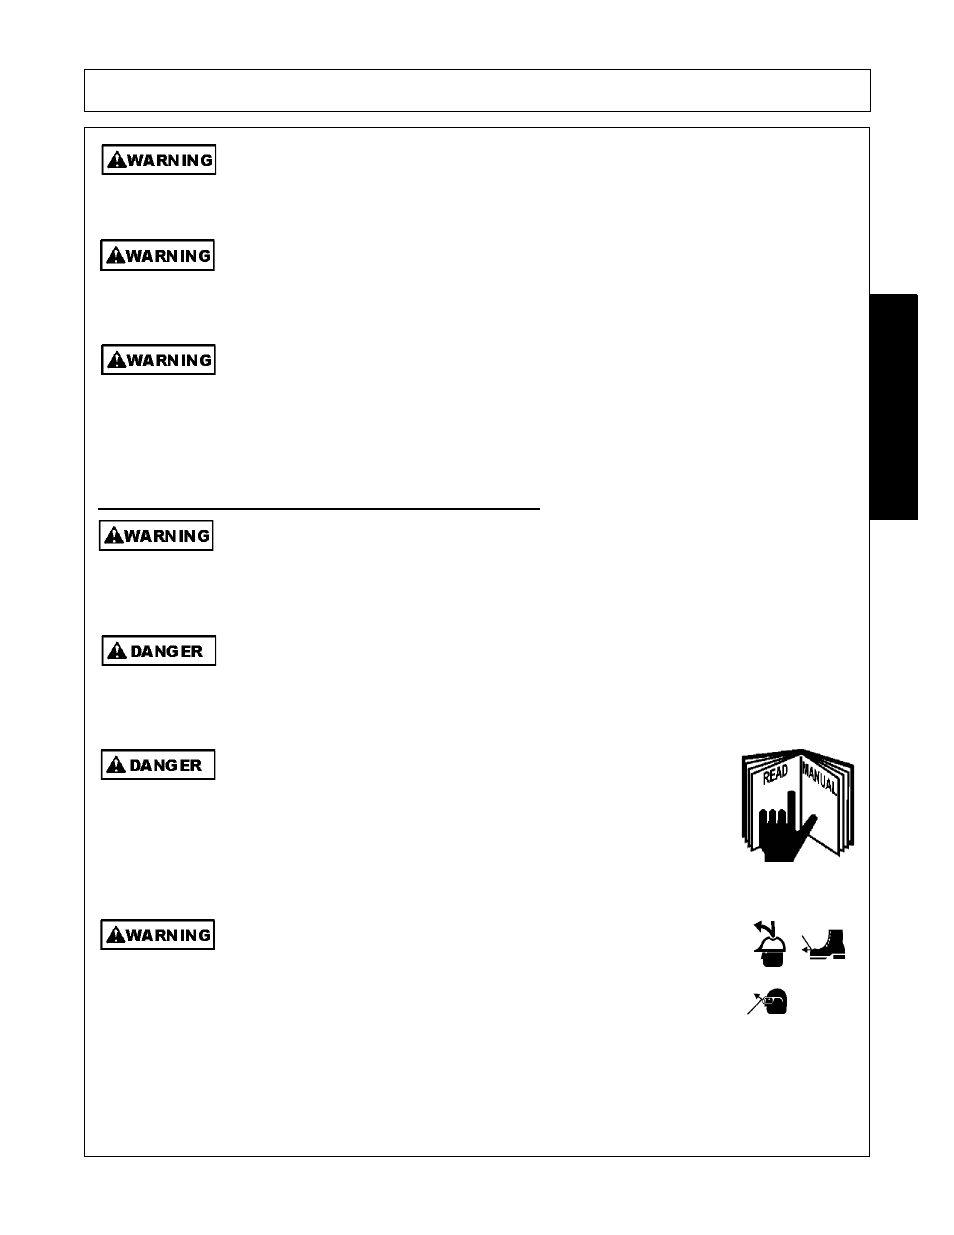 Operator safety instructions and practices, Operator safety instructions  and practices -3, Safety | Servis-Rhino SE10-4A User Manual | Page 9 / 168